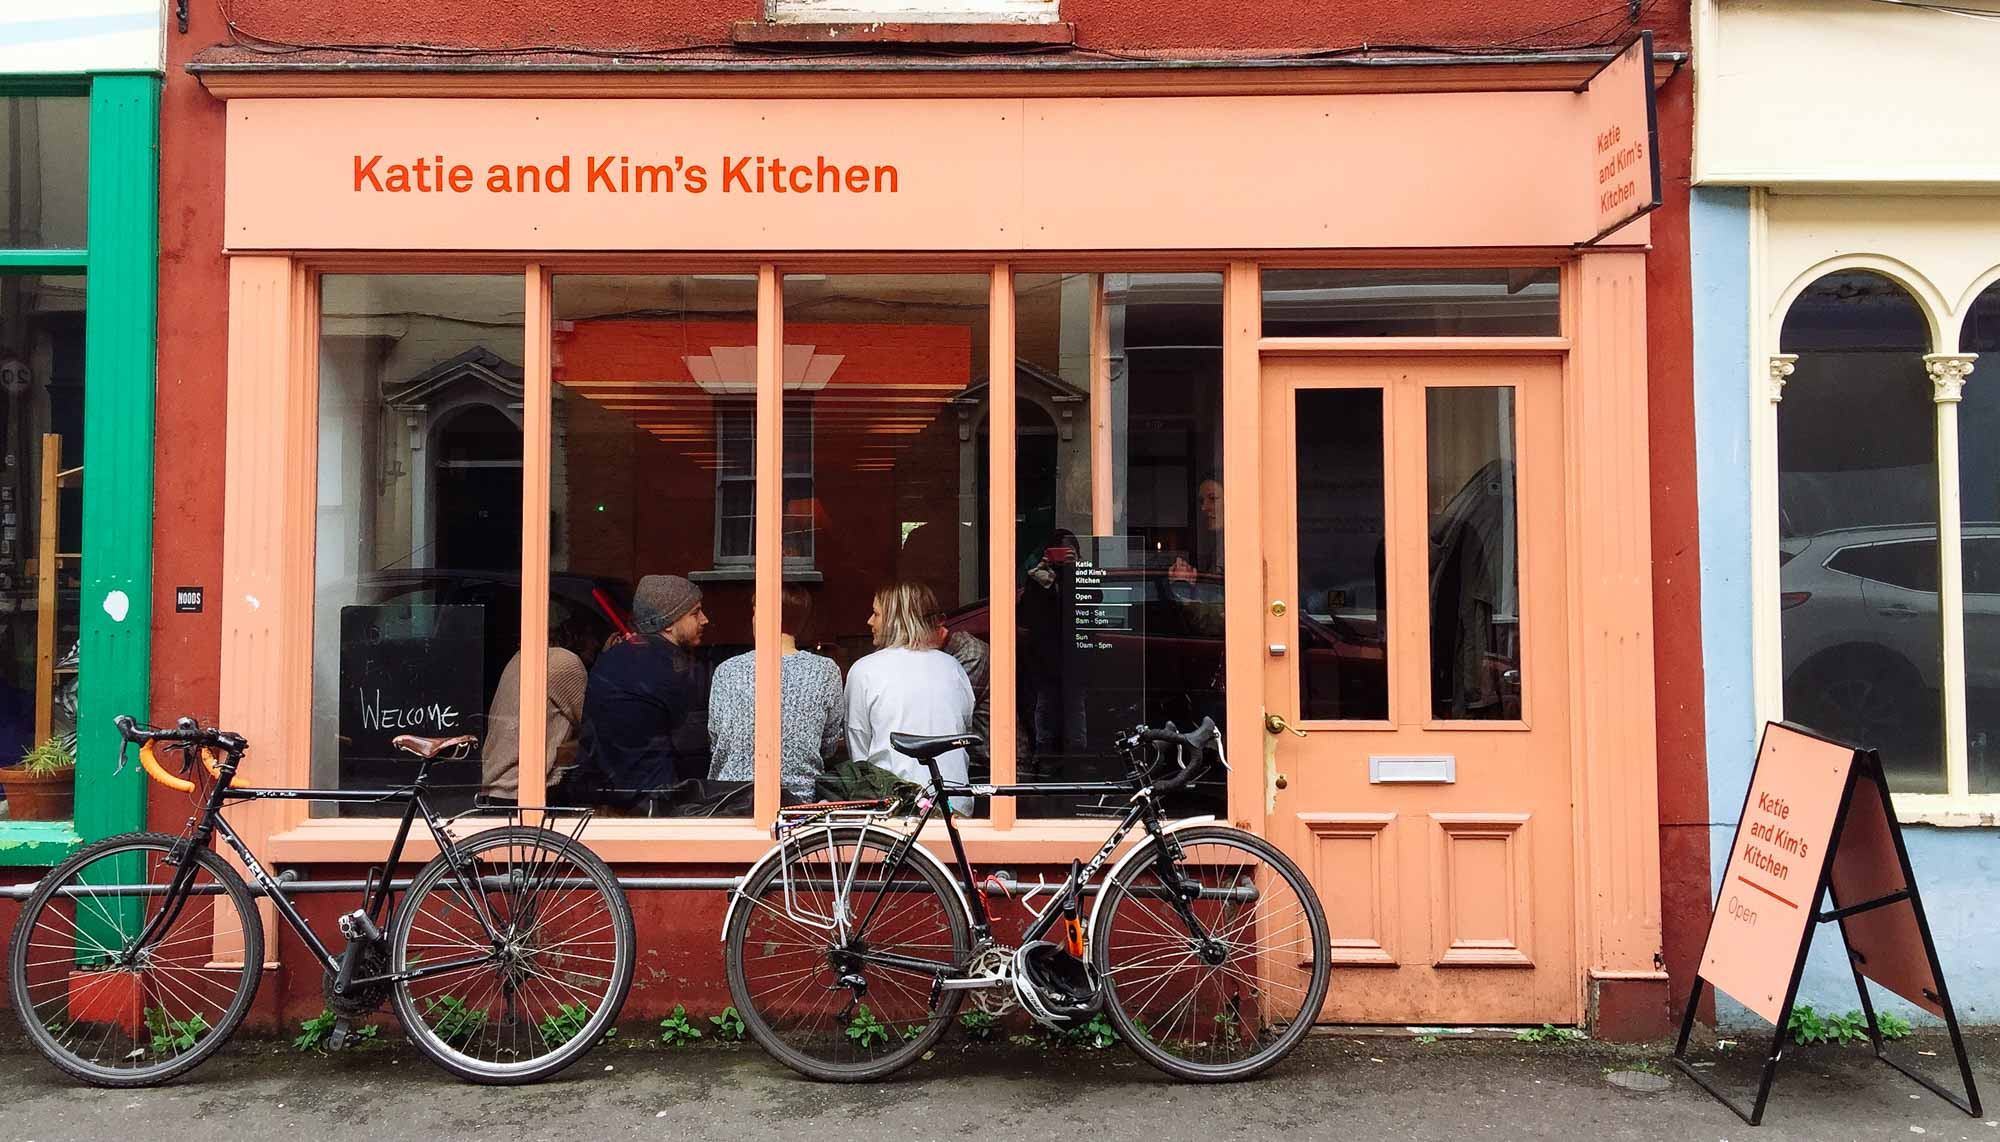 Things to do in Bristol - Katie and Kims Kitchen, Picton Street, Montpelier